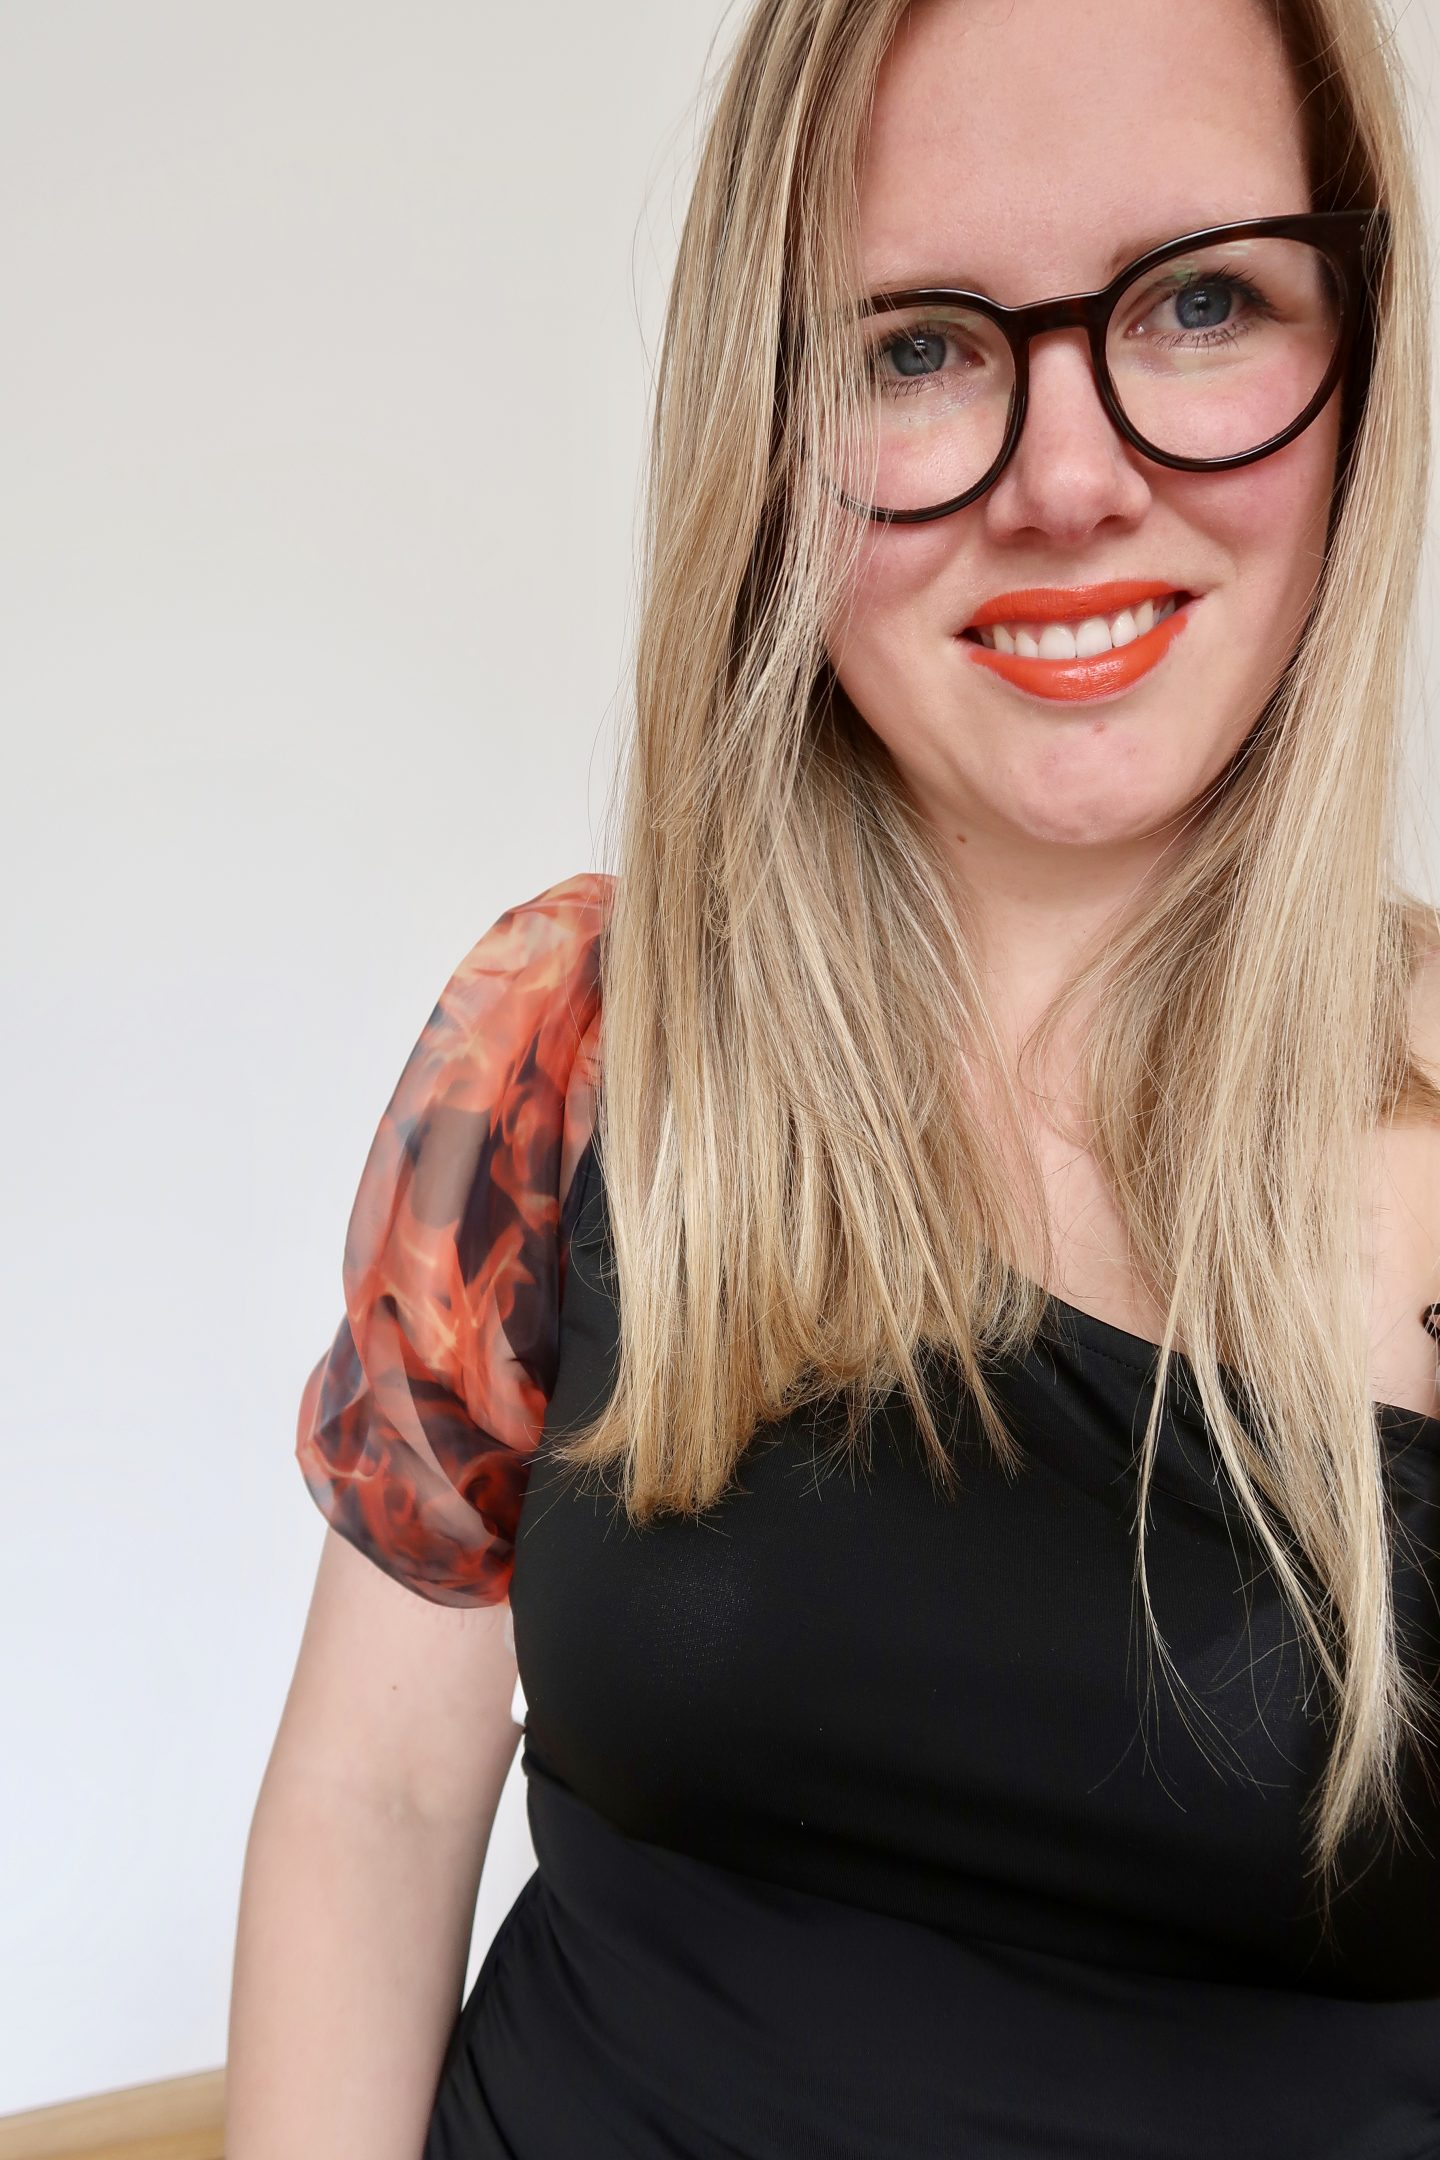 A woman with blonde hair and glasses in a black dress with one sleeve orange and black